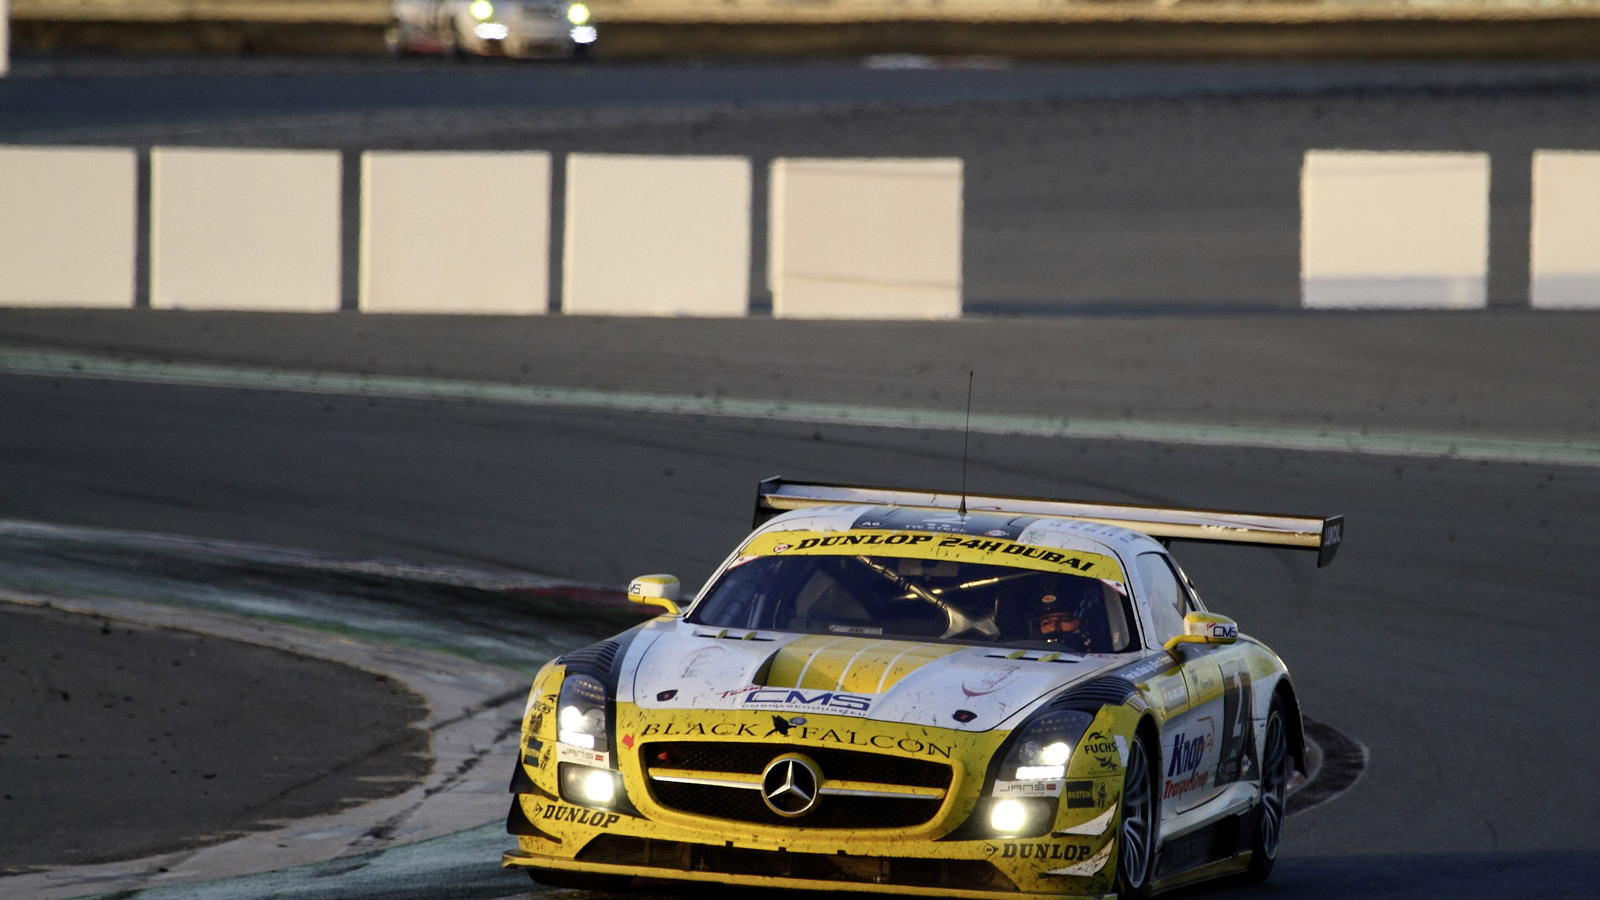 AMG customer teams at the 2013 Dubai 24 Hours endurance race